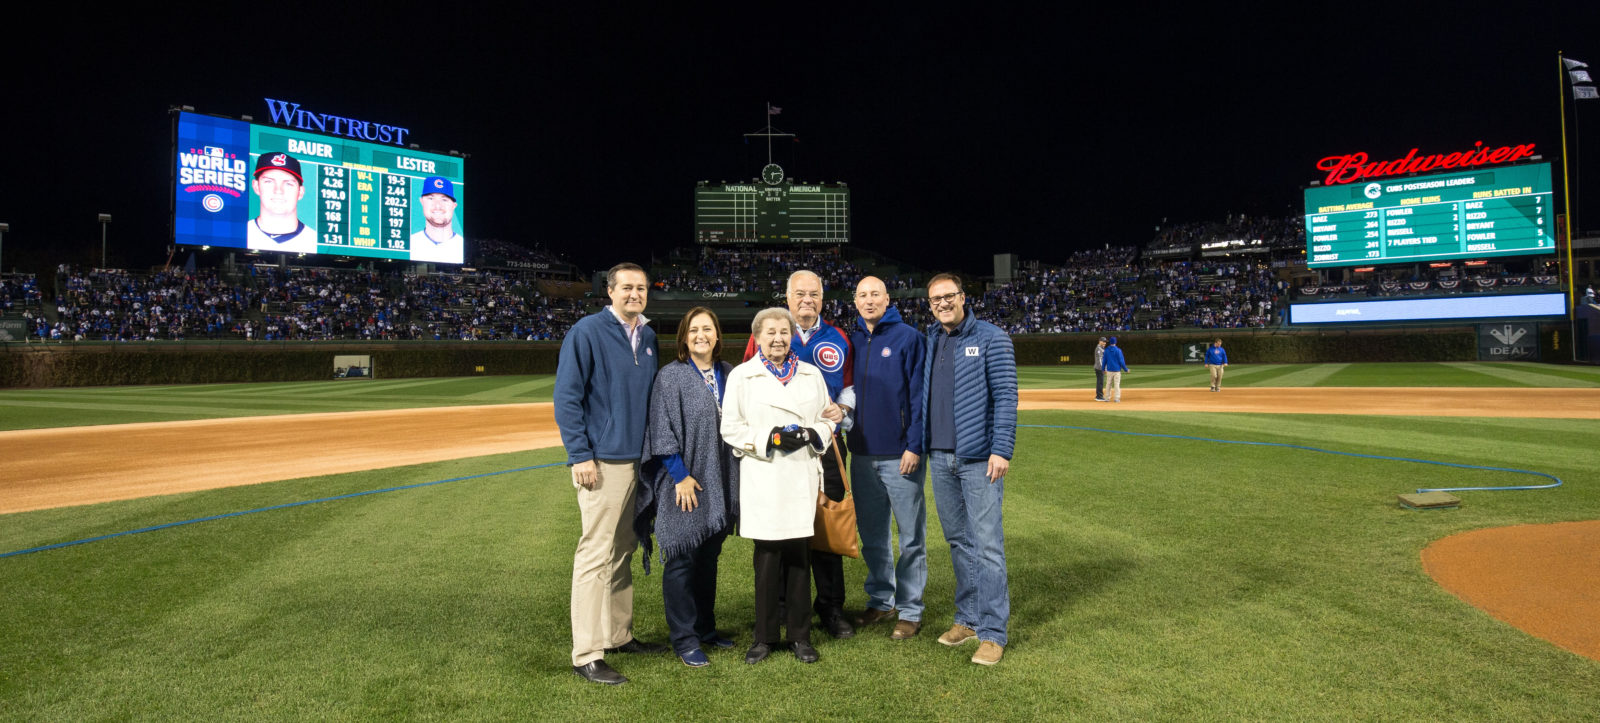 Image of Ricketts family on Chicago Cubs field